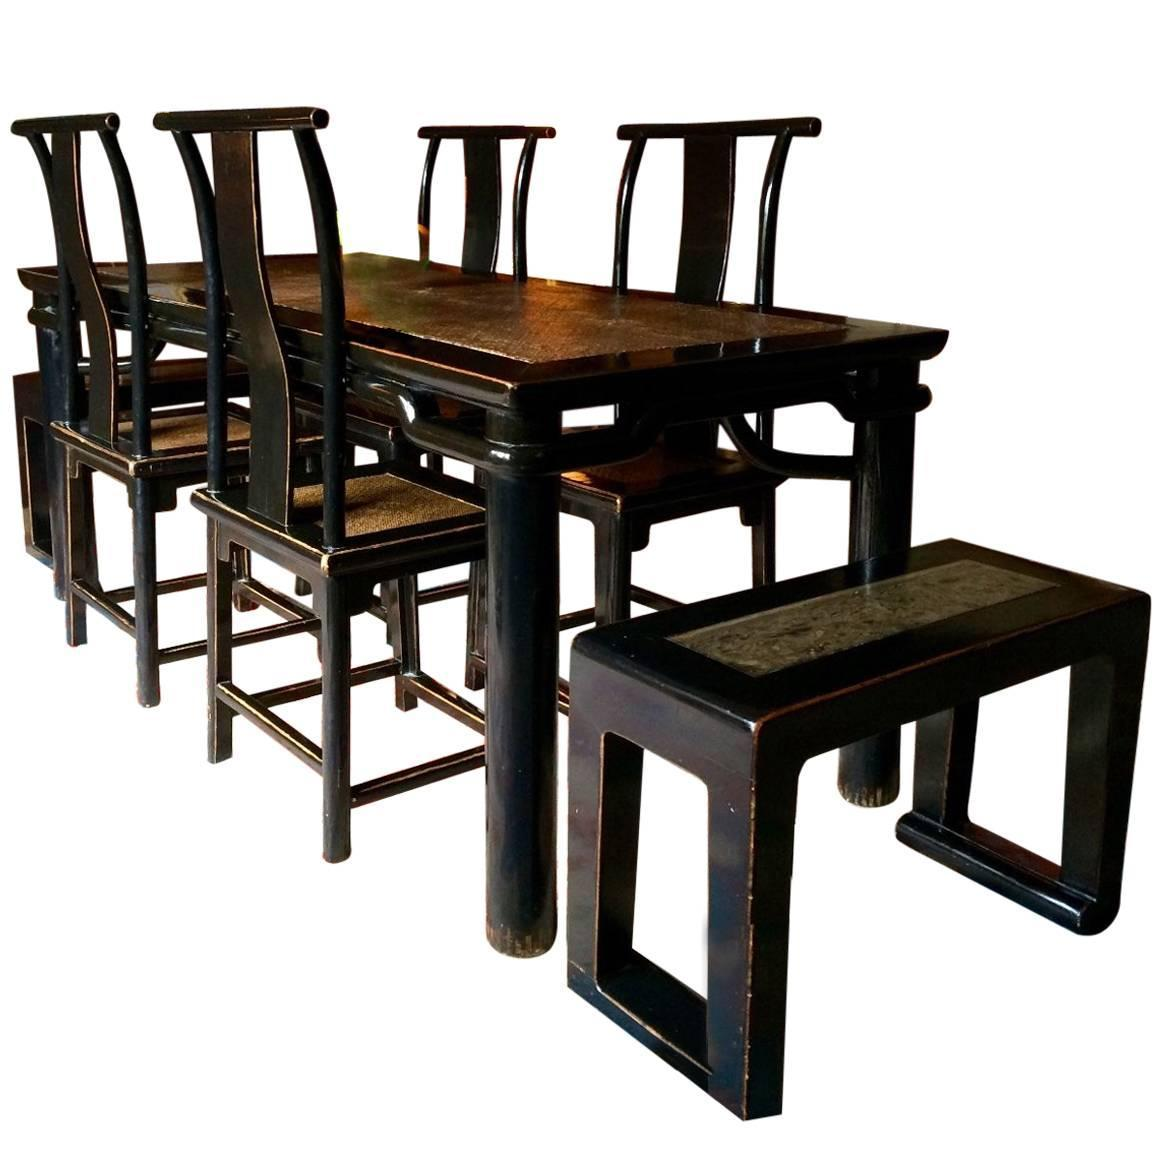 Chinese Dining Table: Chinese Dining Table And Chairs And Benches Suite Ming